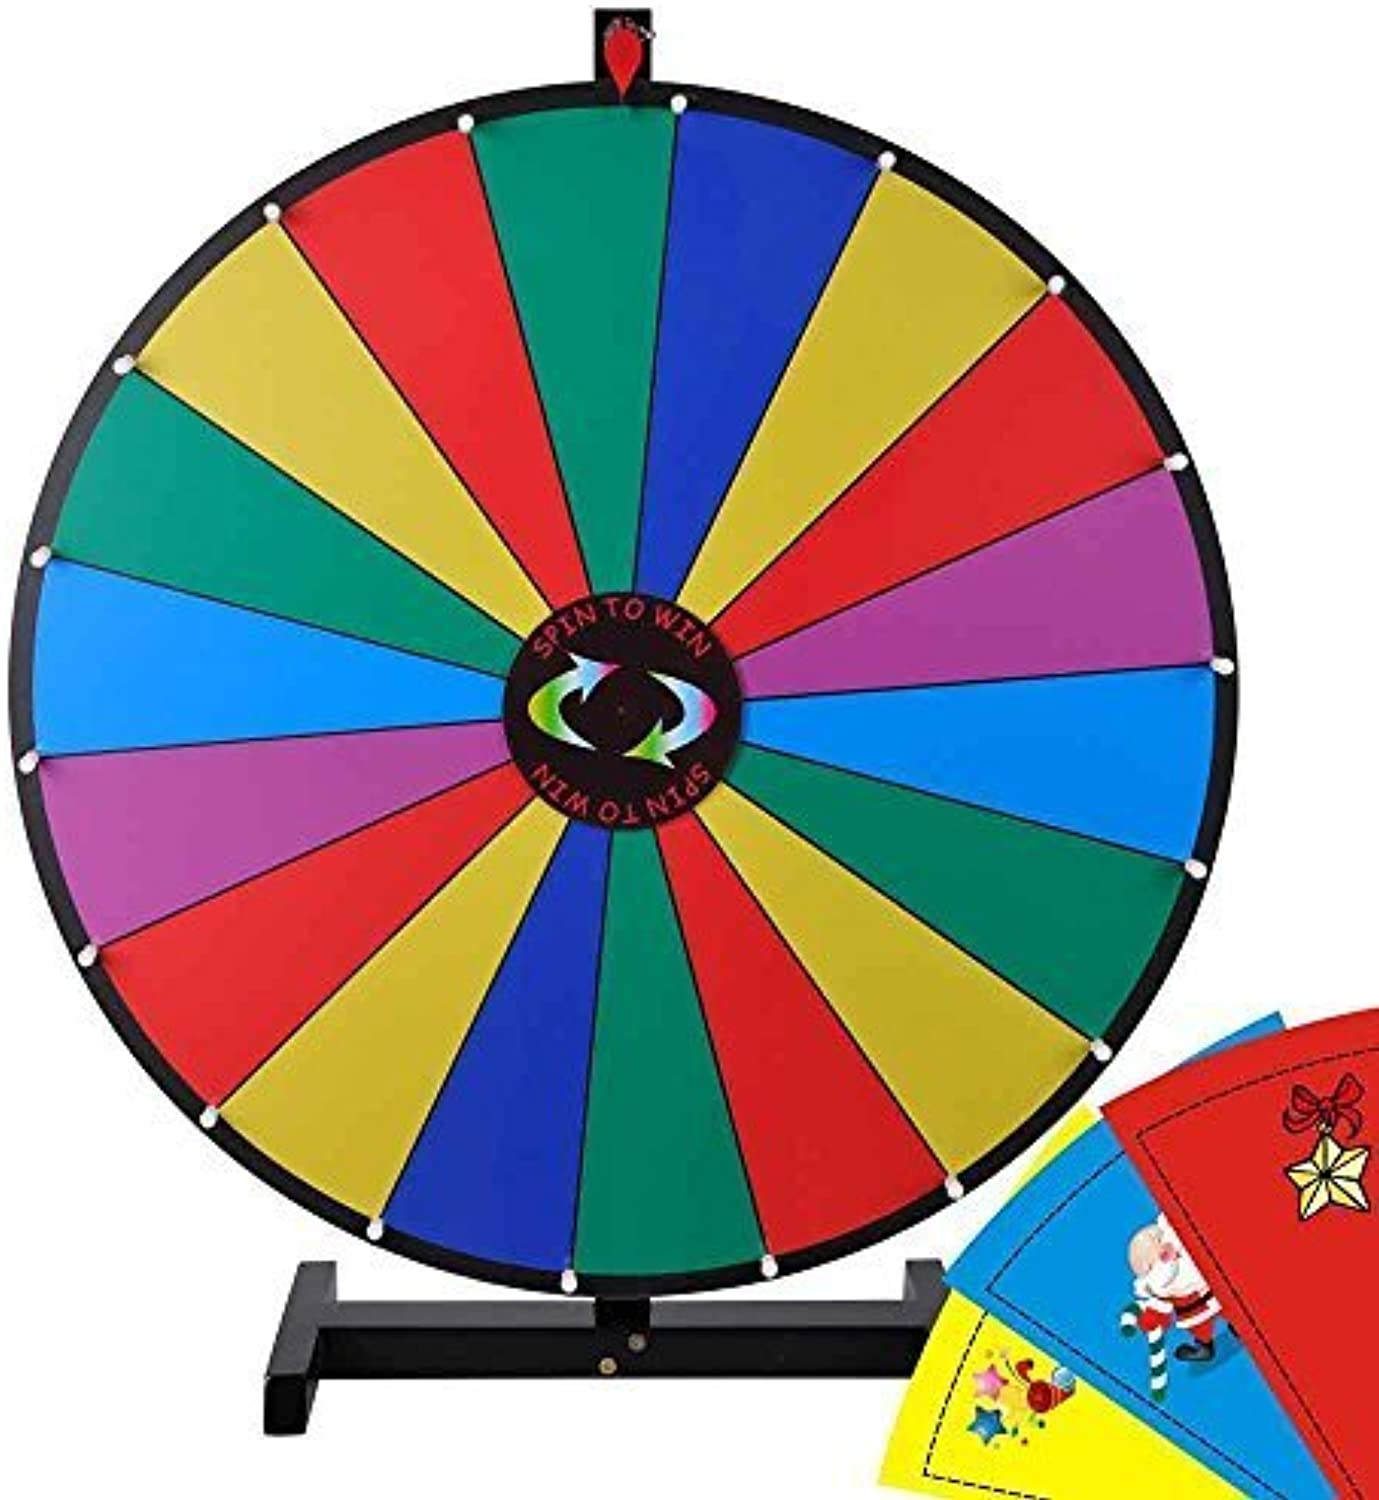 Yescom 18 Segment 30 Inch Tabletop Farbeful Spin Prize Wheel by